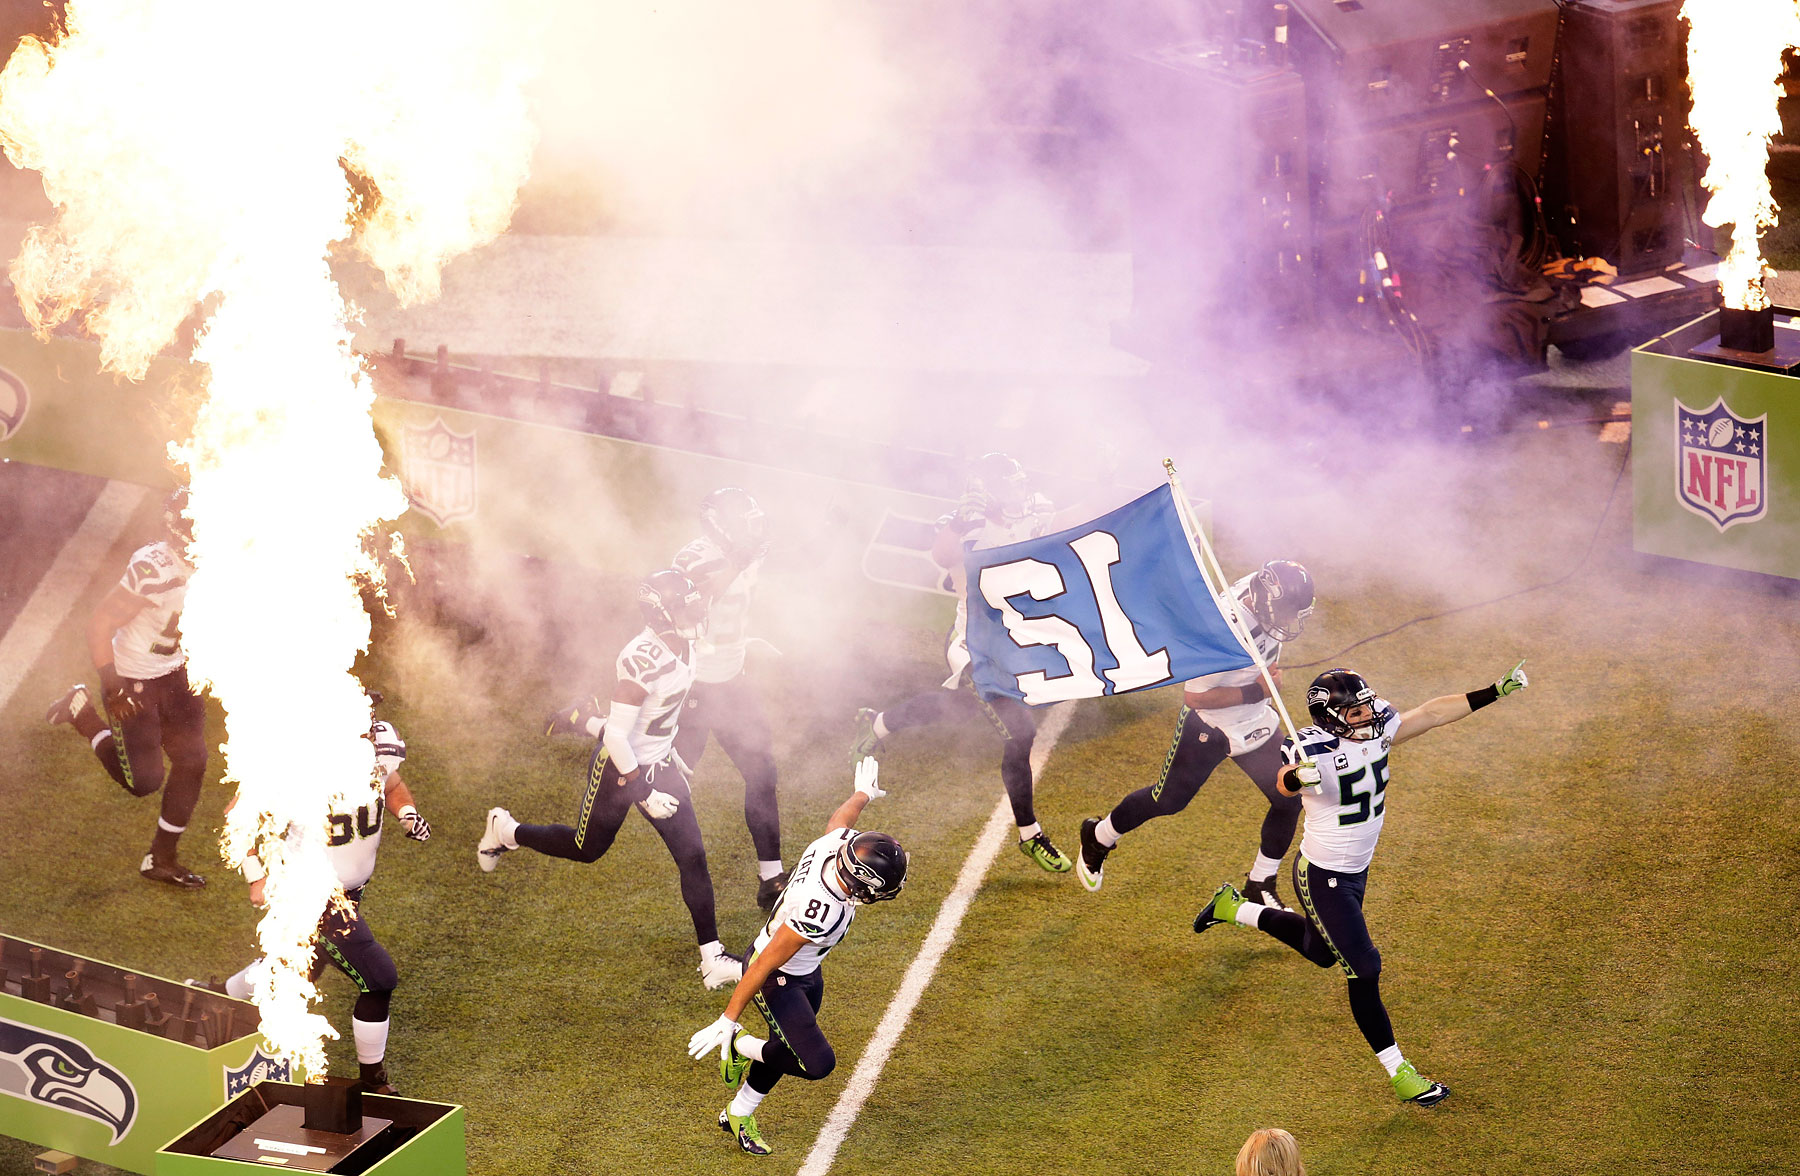 Linebacker Heath Farwell of the Seattle Seahawks leads the team onto the field at start of Super Bowl XLVIII .